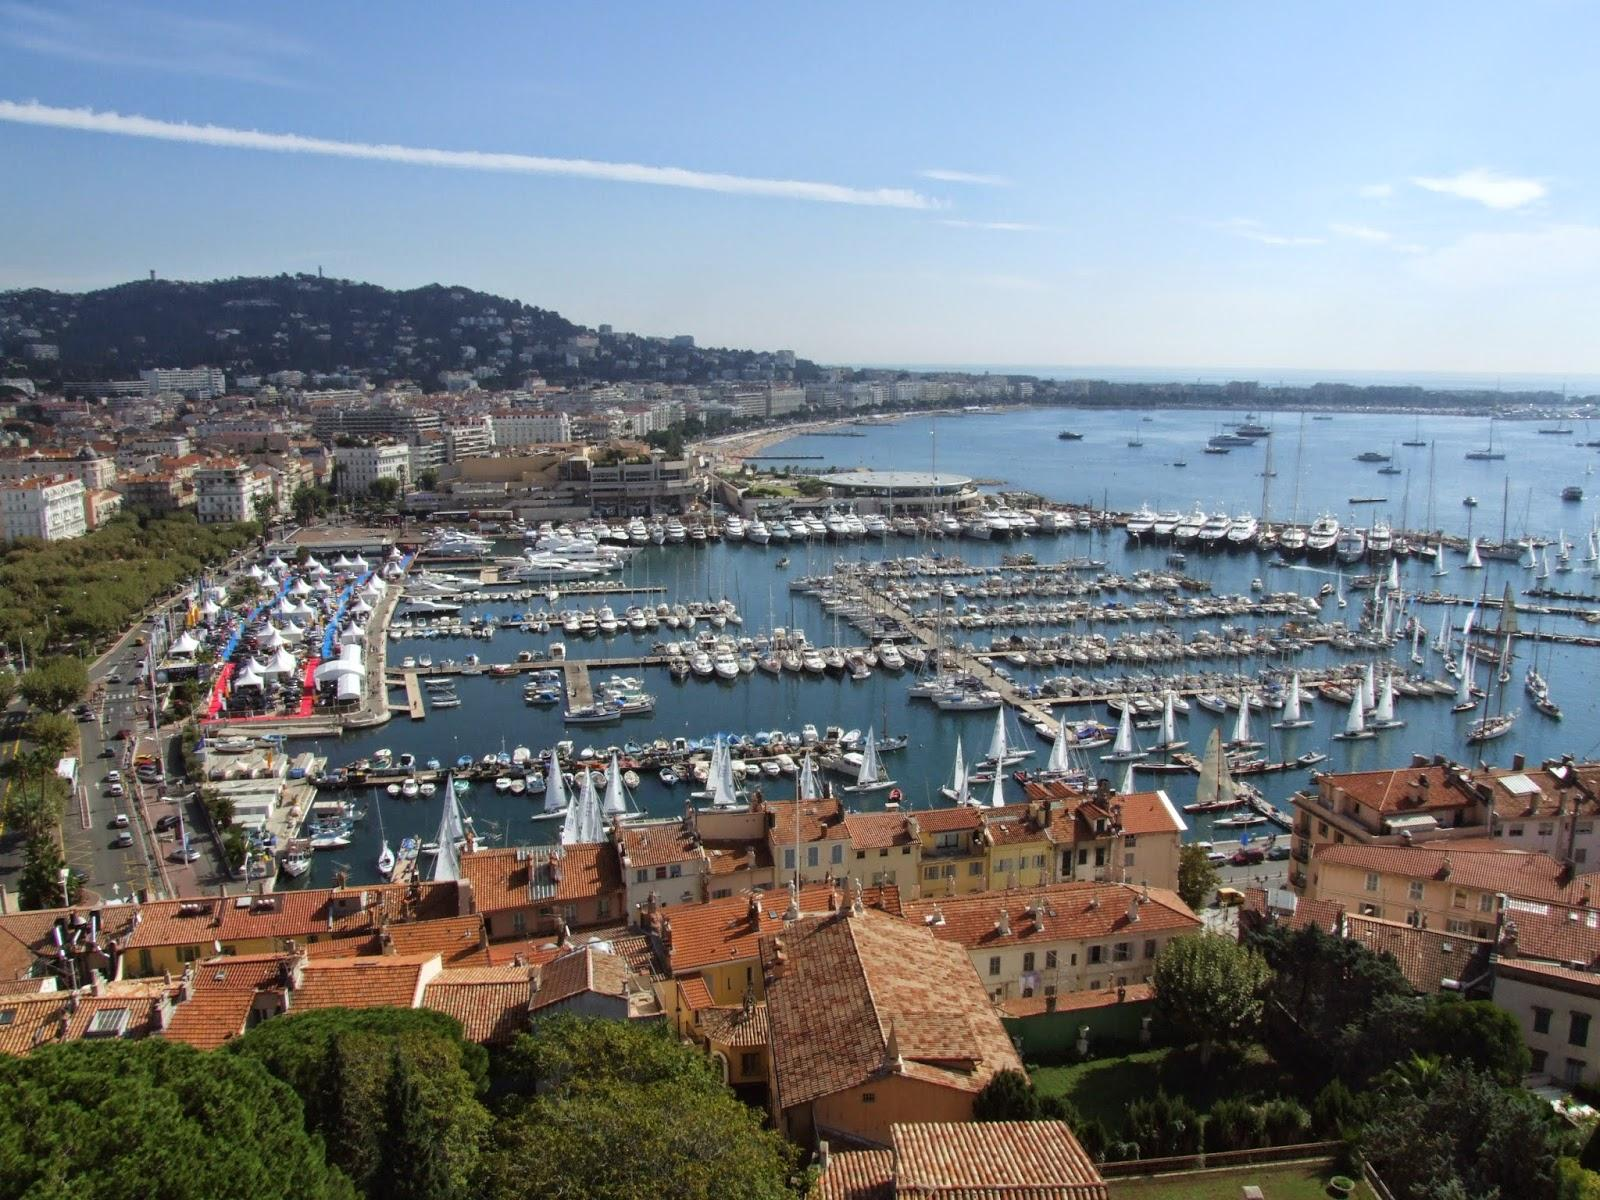 Amazing view of Cannes, the viewing area is 10 mins walk from the apartment